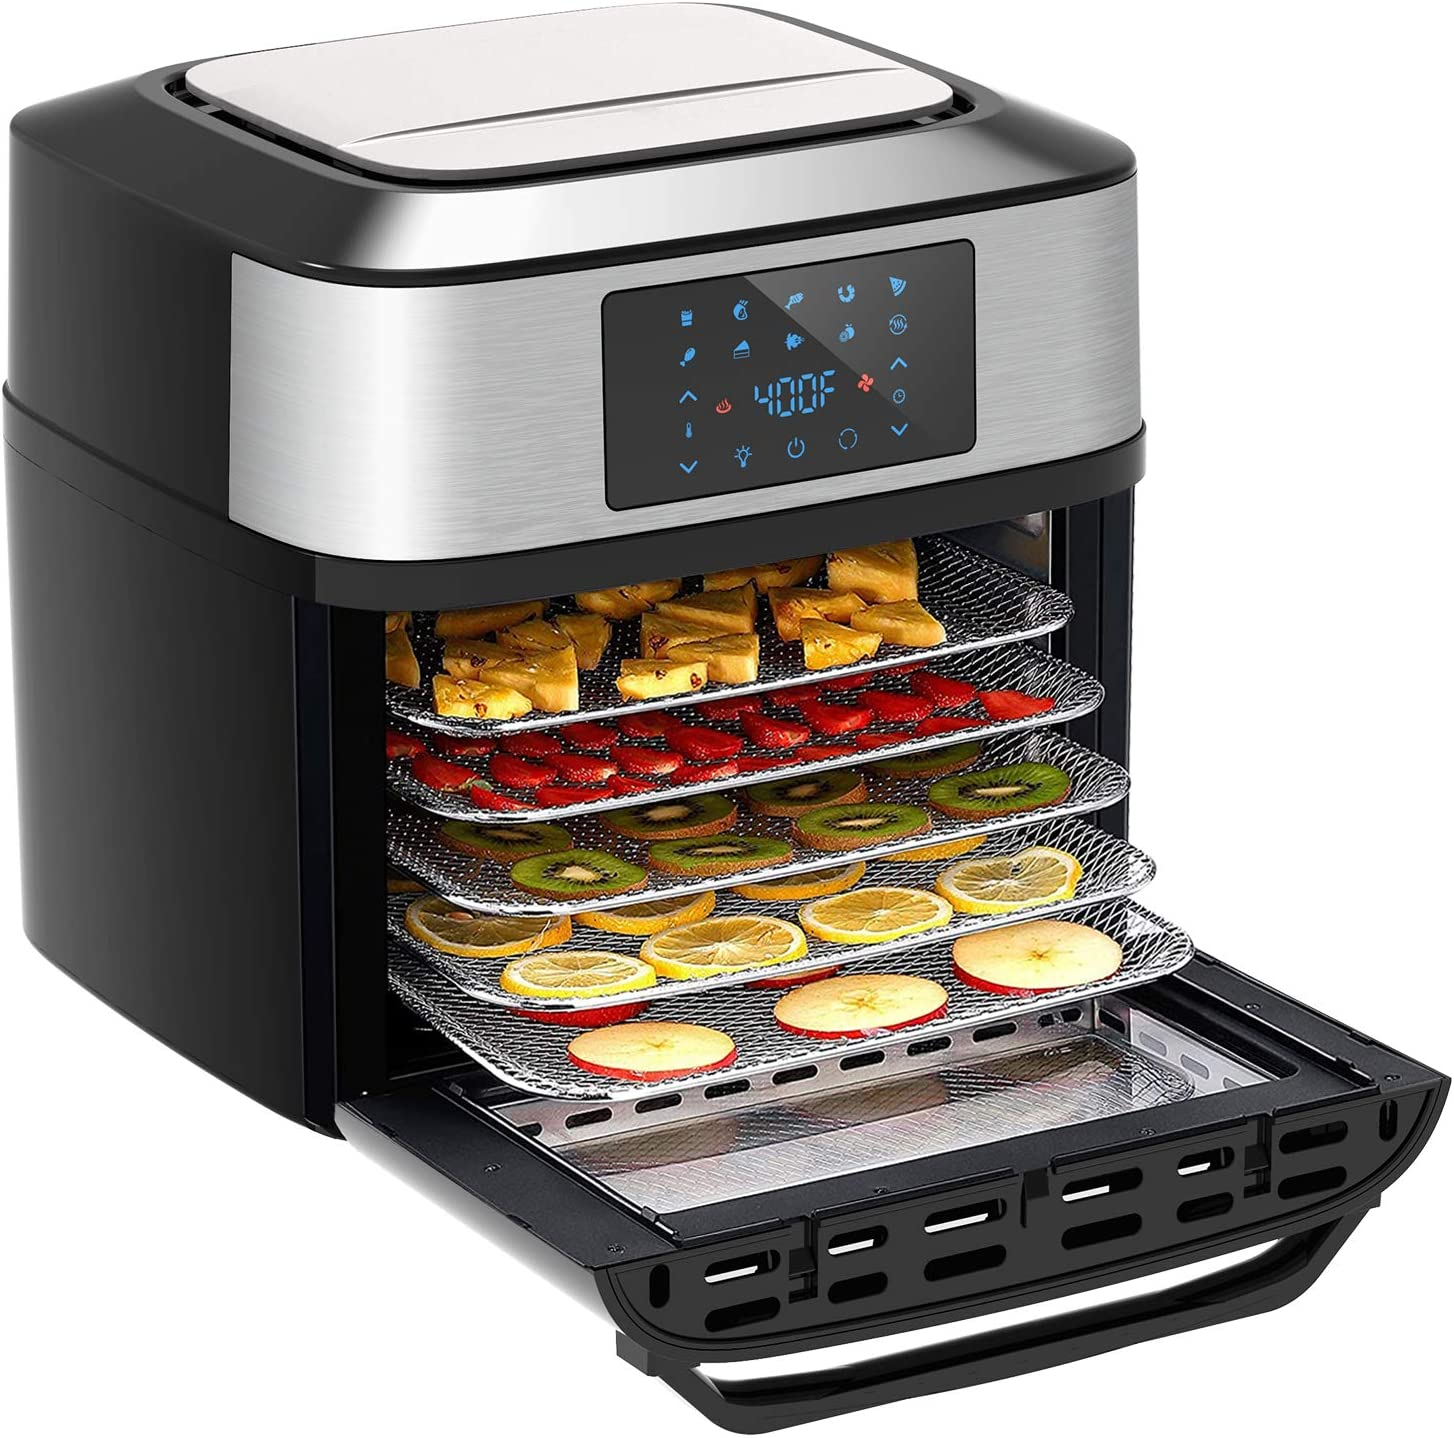 iconites-10-in-1-air-fryer-toaster-oven